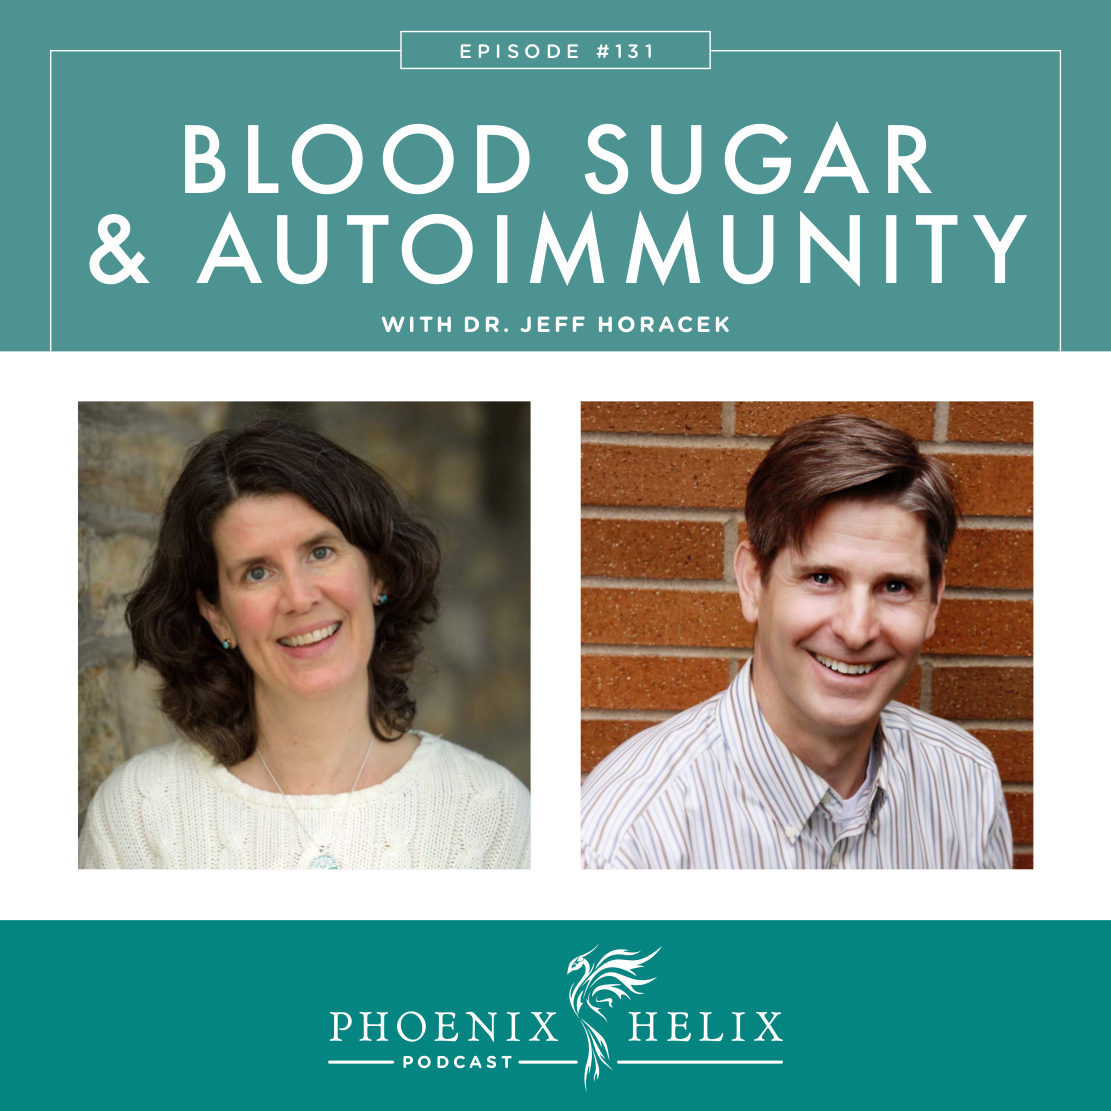 Blood Sugar & Autoimmunity with Dr. Jeff Horacek | Phoenix Helix Podcast